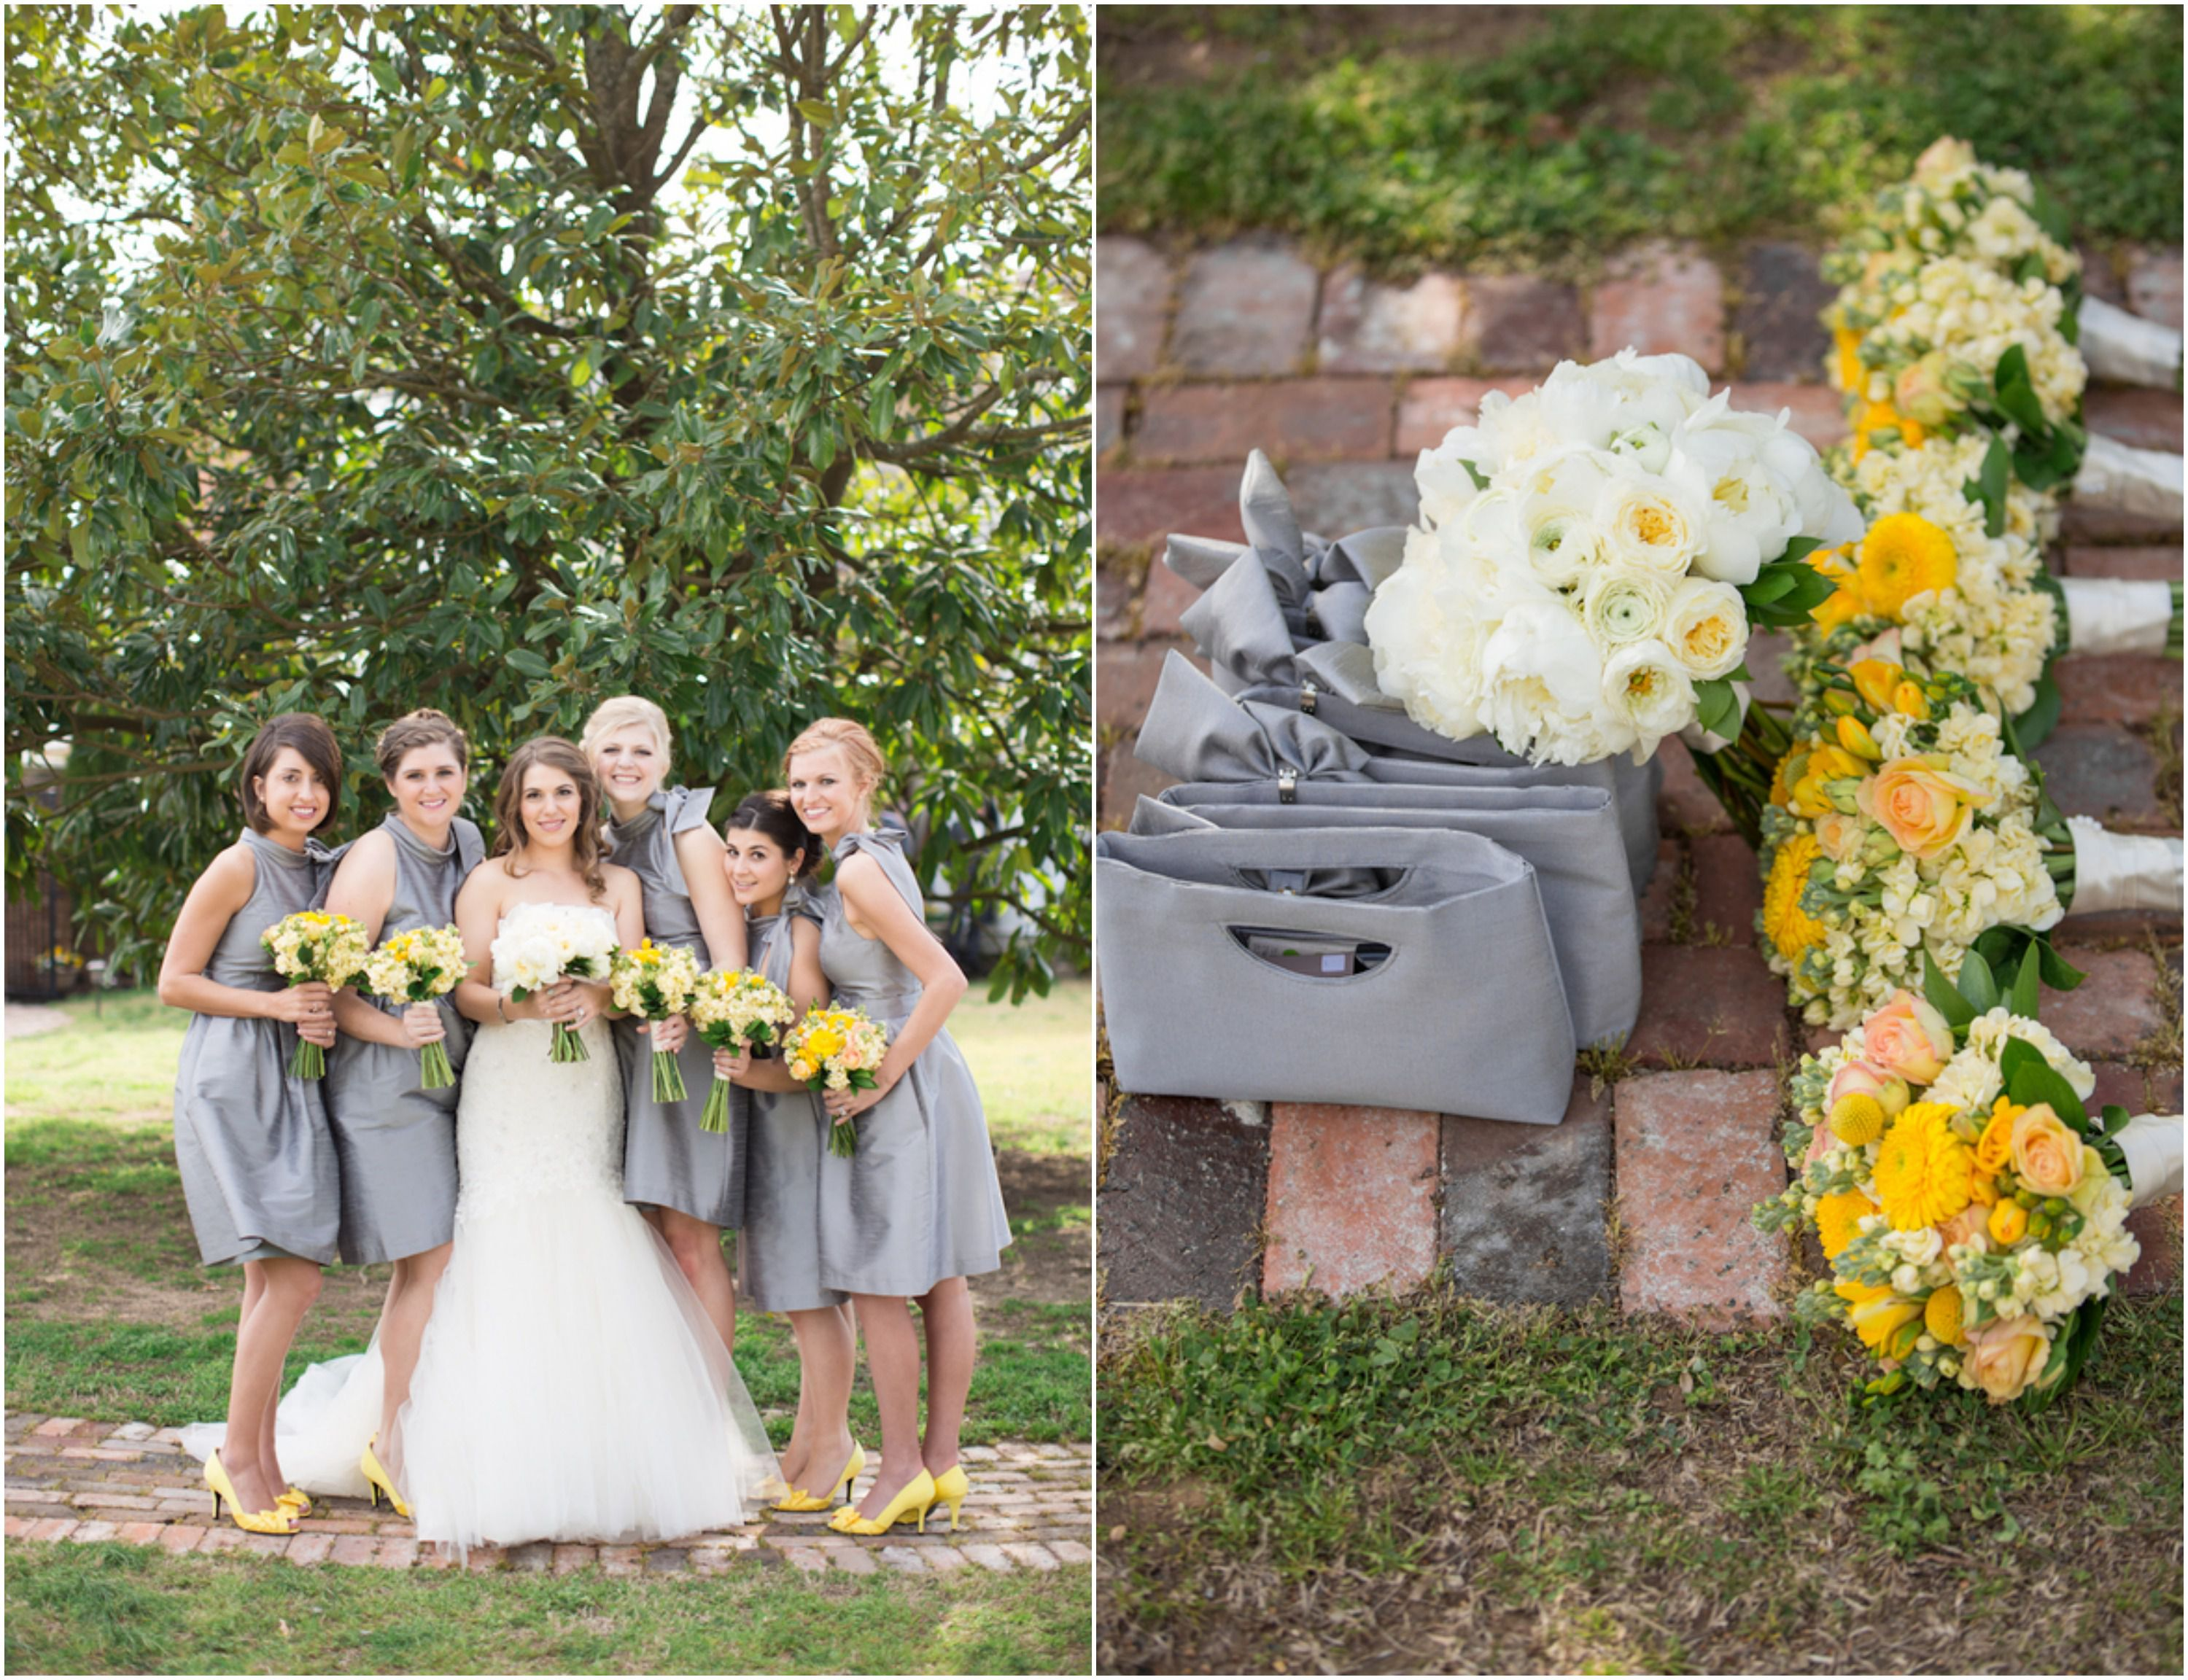 Country Yellow Themed Wedding - Rustic Wedding Chic